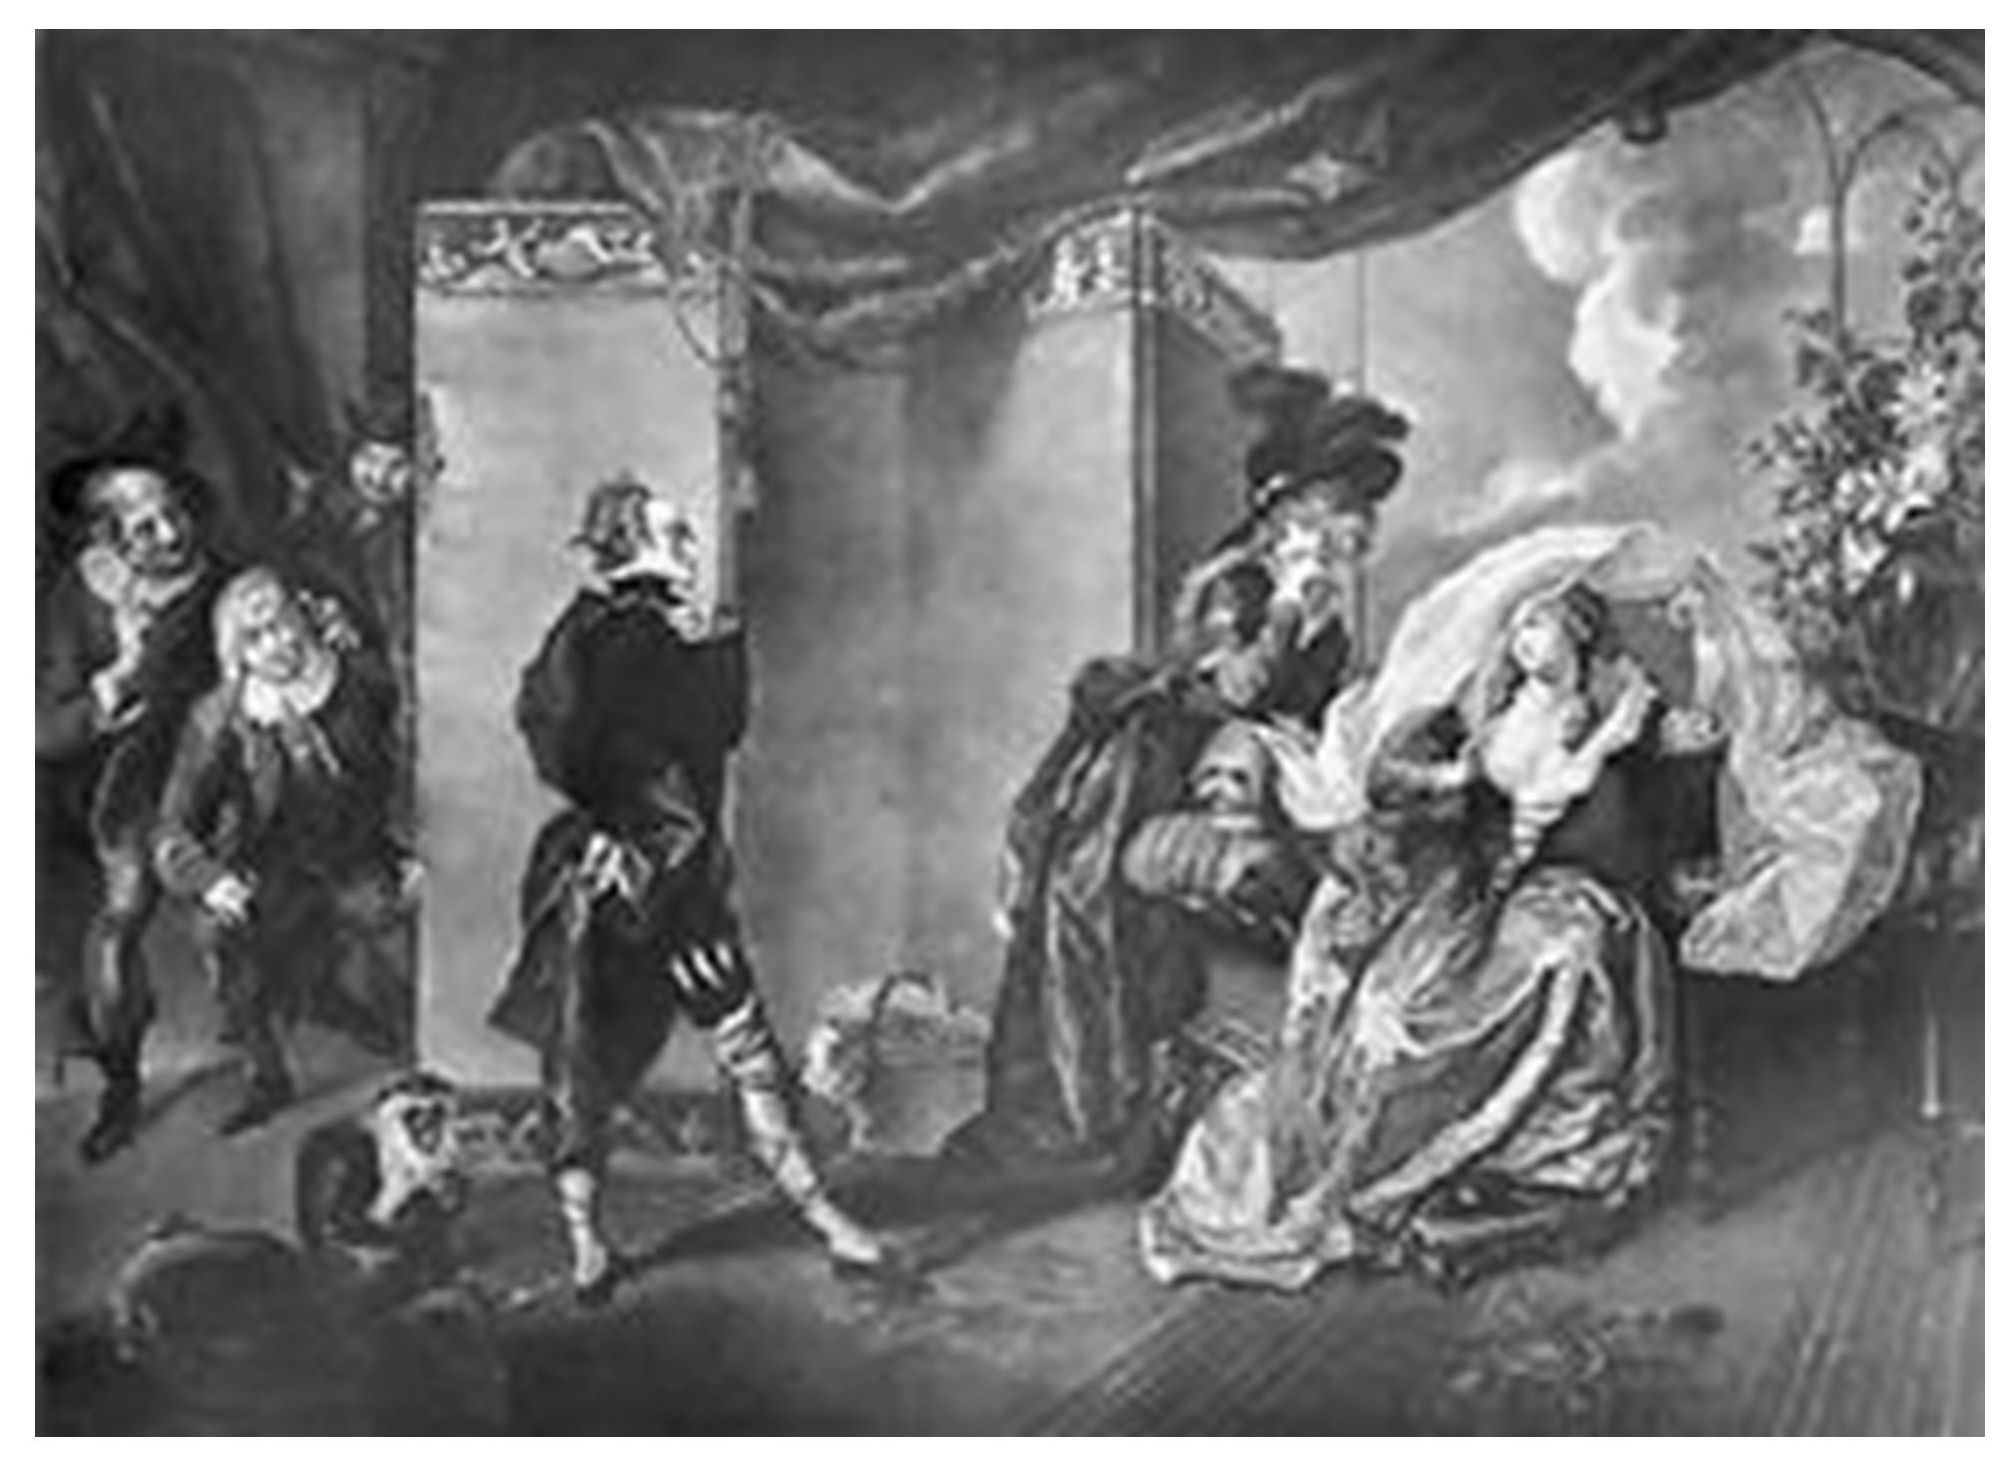 concealment in the twelfth night A mock trial based on william shakespeare's play, twelfth night  thing --  to answer your question about concealment,.